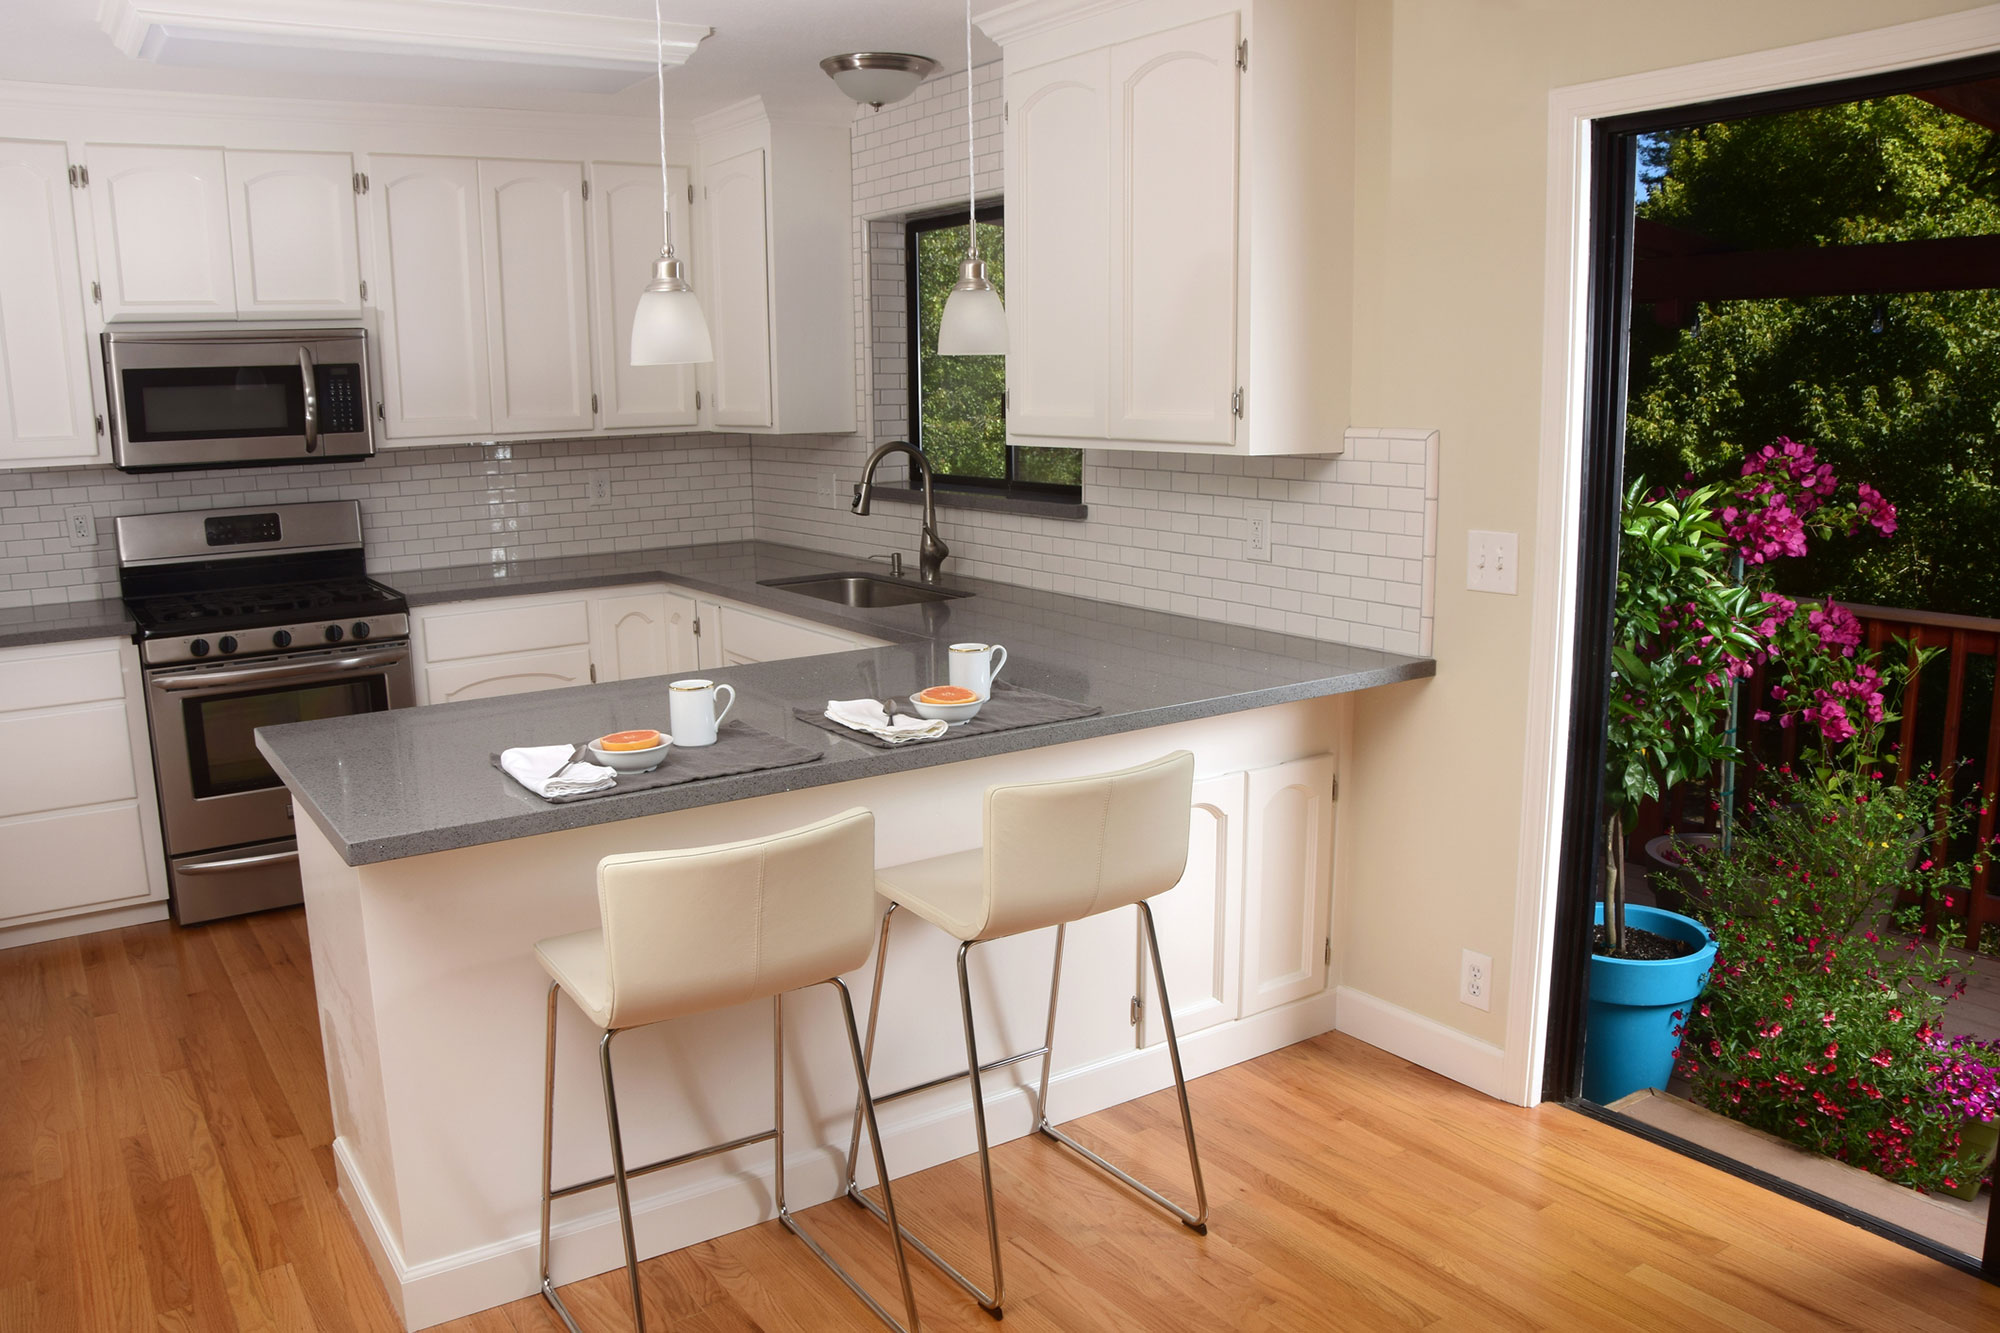 U-Shaped Kitchen 3 - Mihalko's General Contracting Kitchens